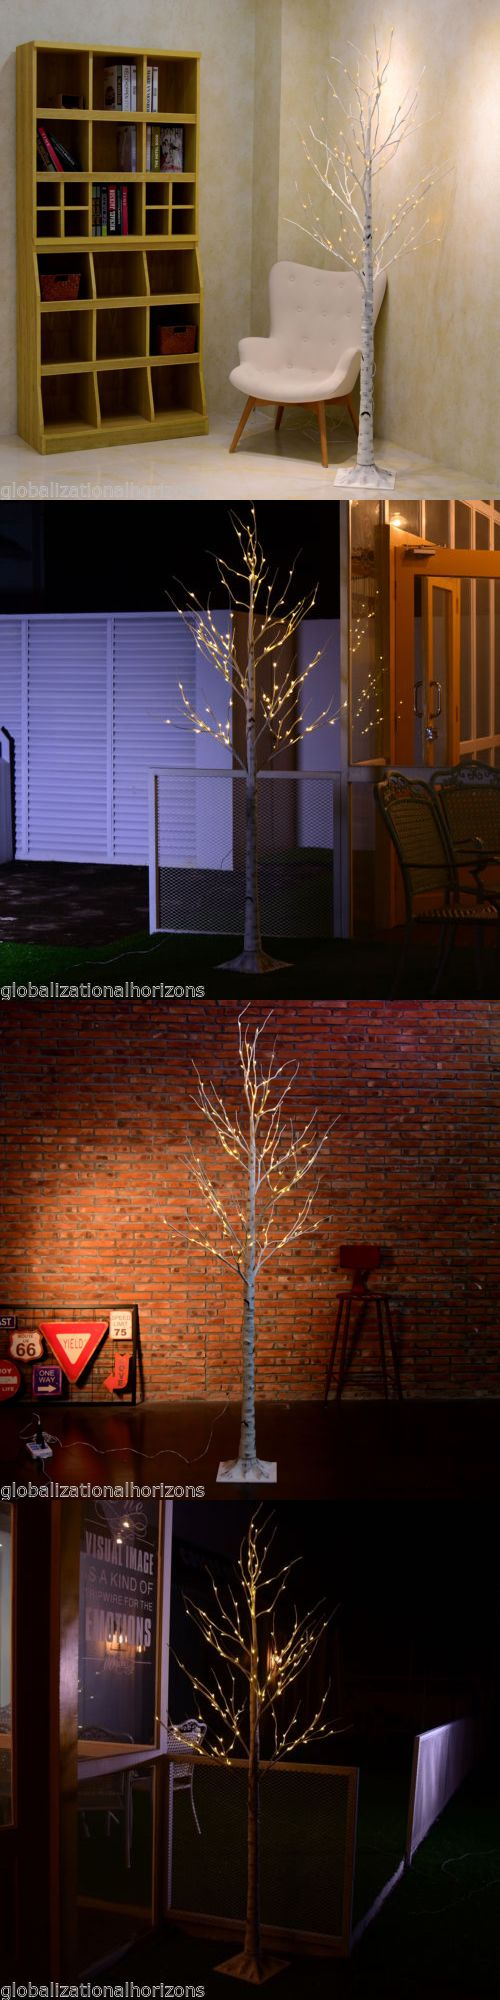 Artificial Christmas Trees 117414: 7Ft 120 Pre-Lit Led Birch Twig Tree Light Wedding Cafe Bar Decor Lighting Trees -> BUY IT NOW ONLY: $59.99 on eBay!